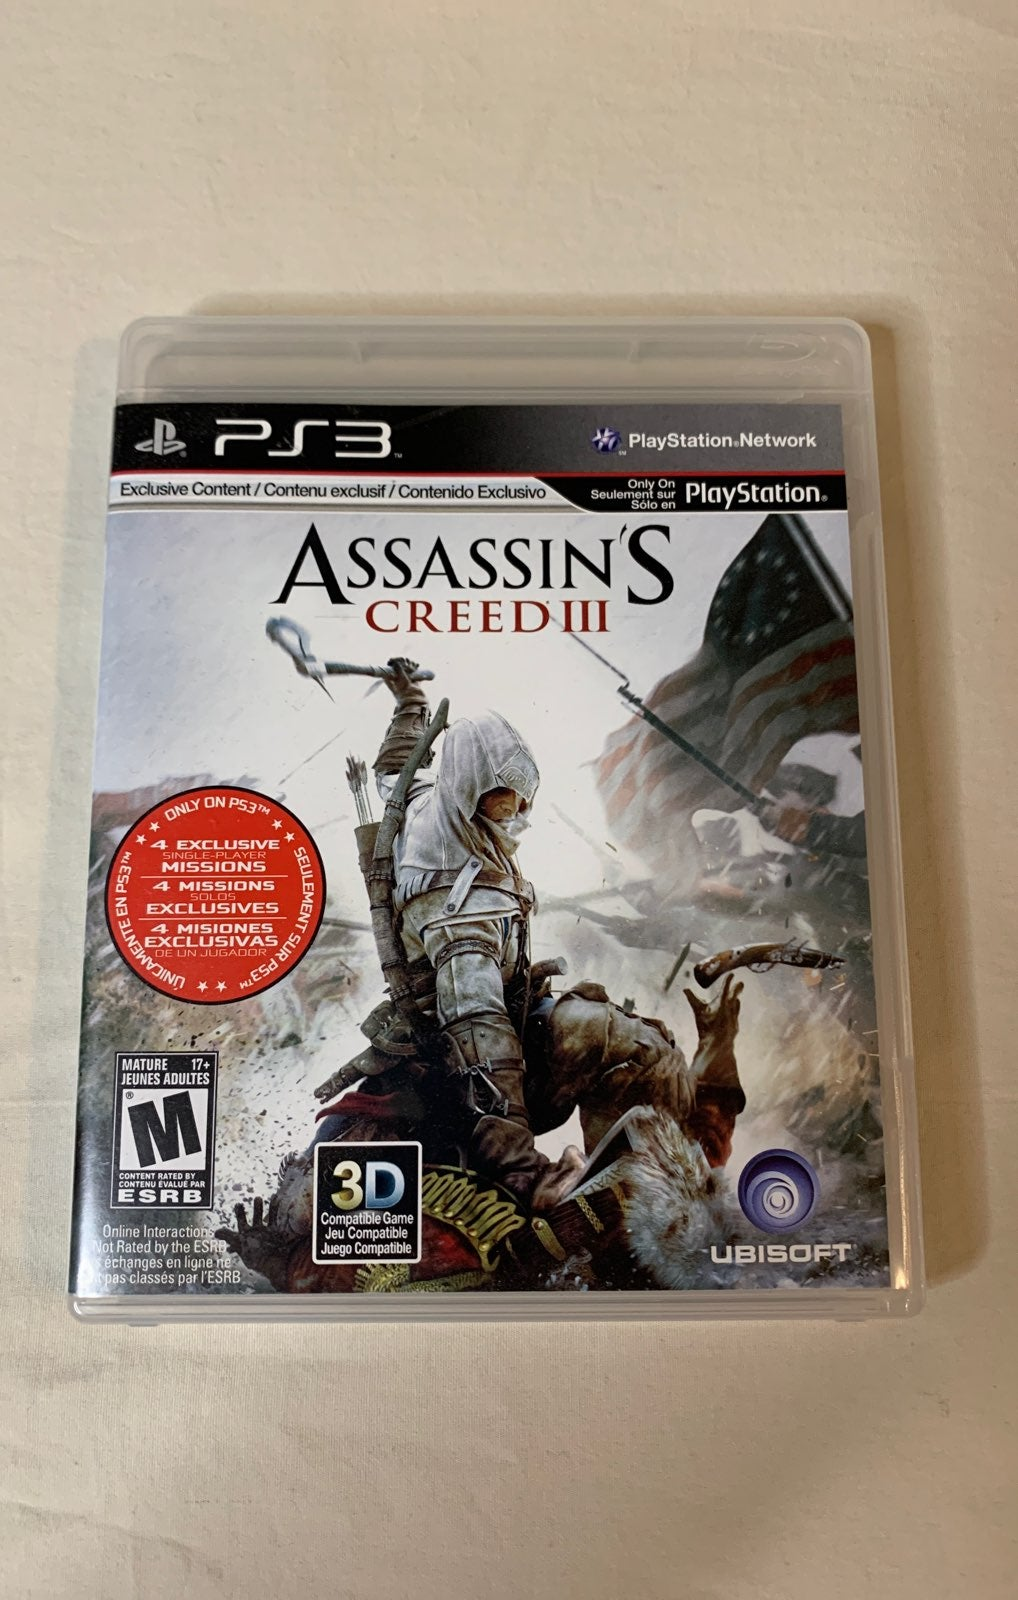 PS3 Assassin's Creed III Game